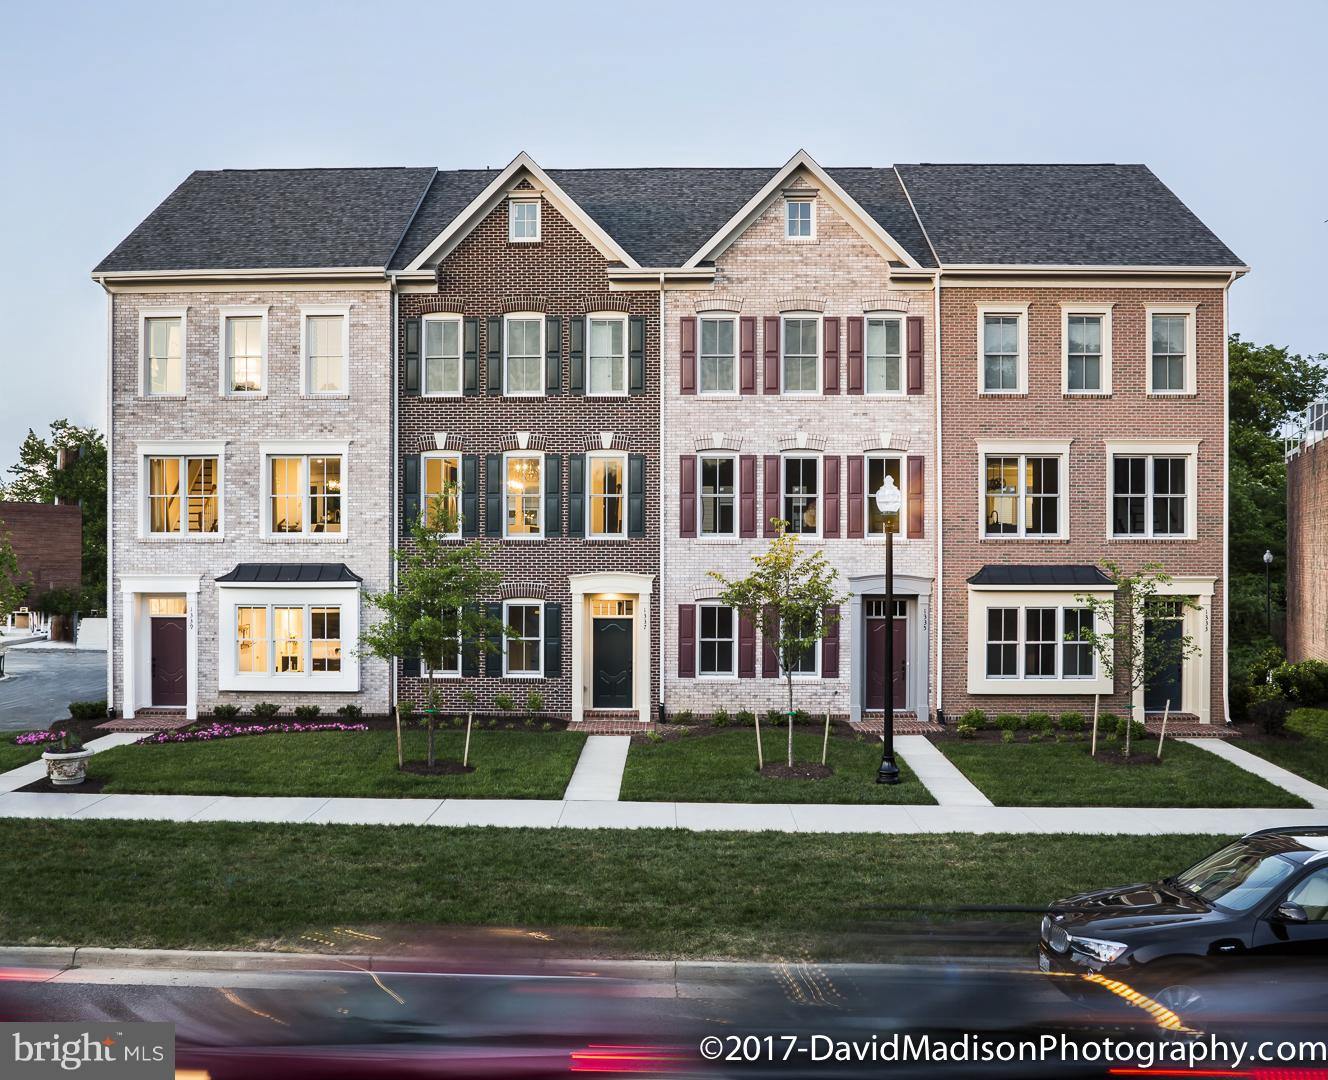 New Construction - Closeout, Four Story Luxury Condominium Townhome in Old Town Alexandria. 3 Bedrooms, 3.5 Baths + 2nd Powder Room on Loft/Roof Top Terrace level.. Beautiful Kitchen with alpine white cabinets; large center island and generous cabinet storage. Hardwood Flooring throughout Main Level. 9 ft ceilings on all levels, Large 200+ sq ft Terrace! 2 Car Garage!! Fenced Front Yards!!!